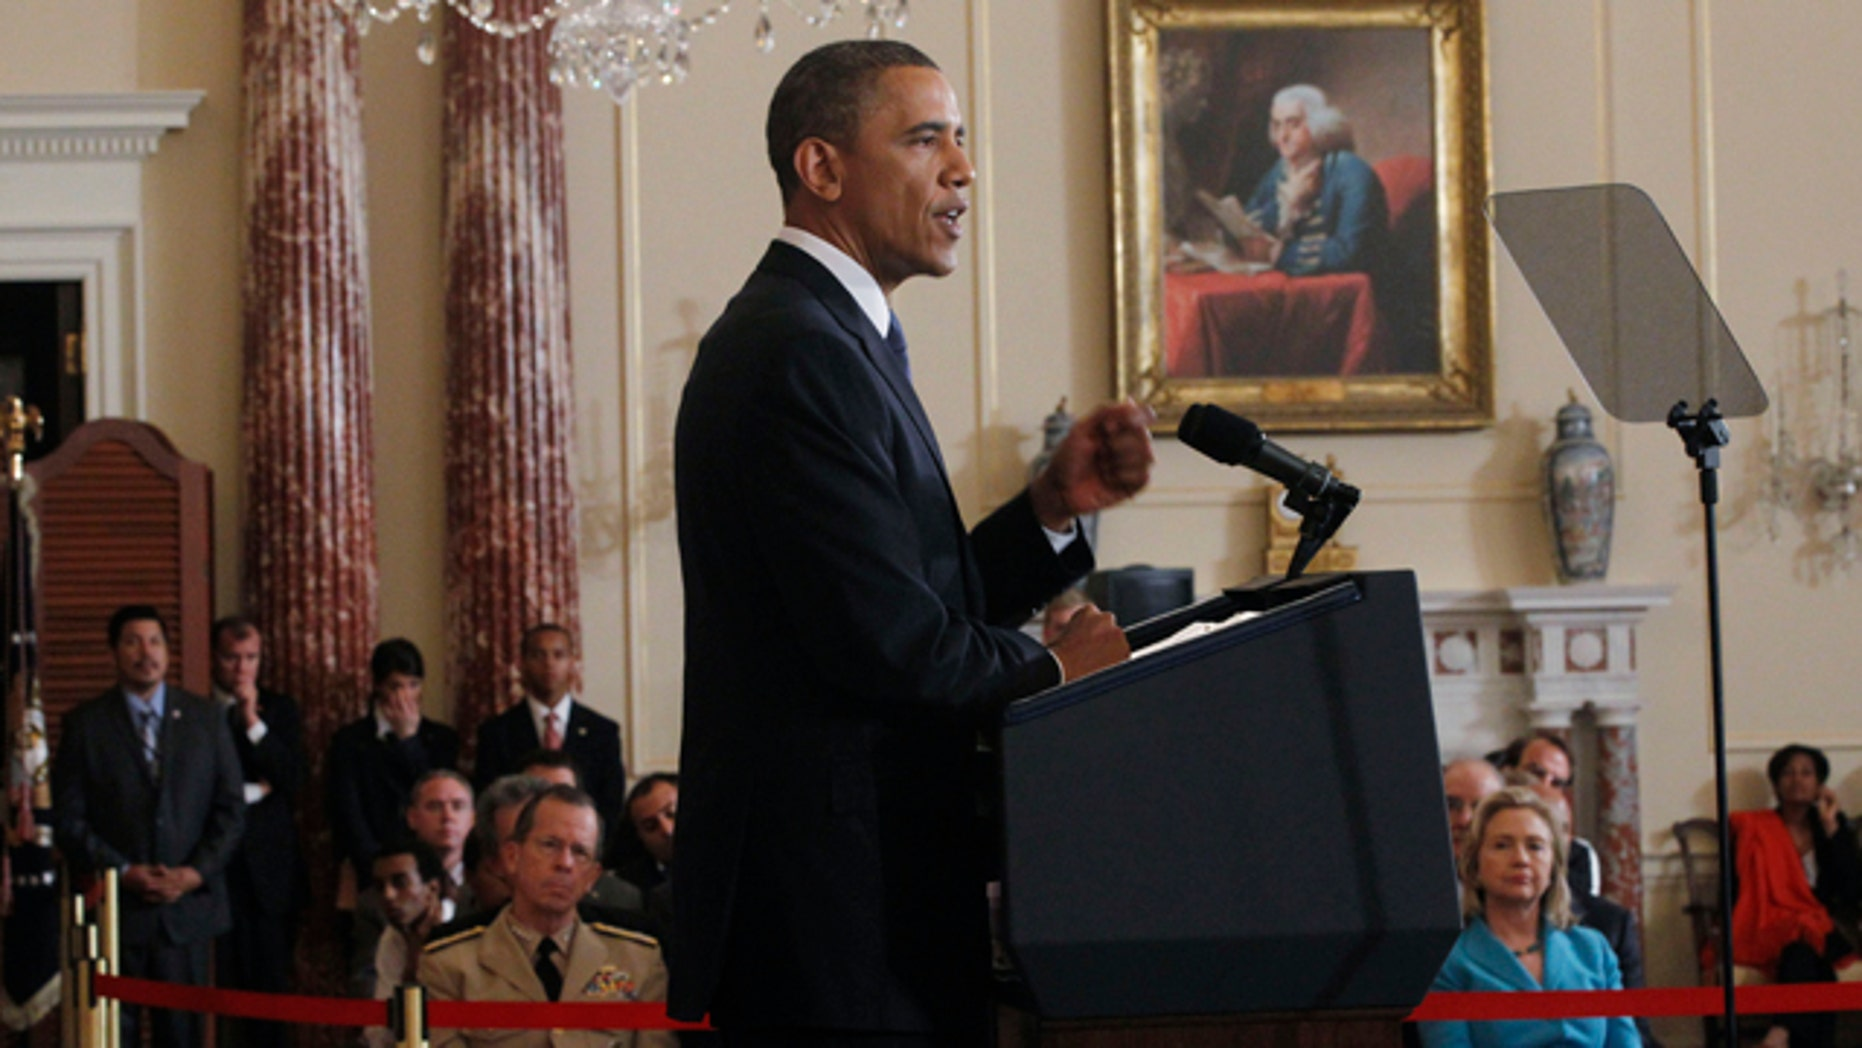 May 19: President Barack Obama delivers his Middle East speech at the State Department in Washington.